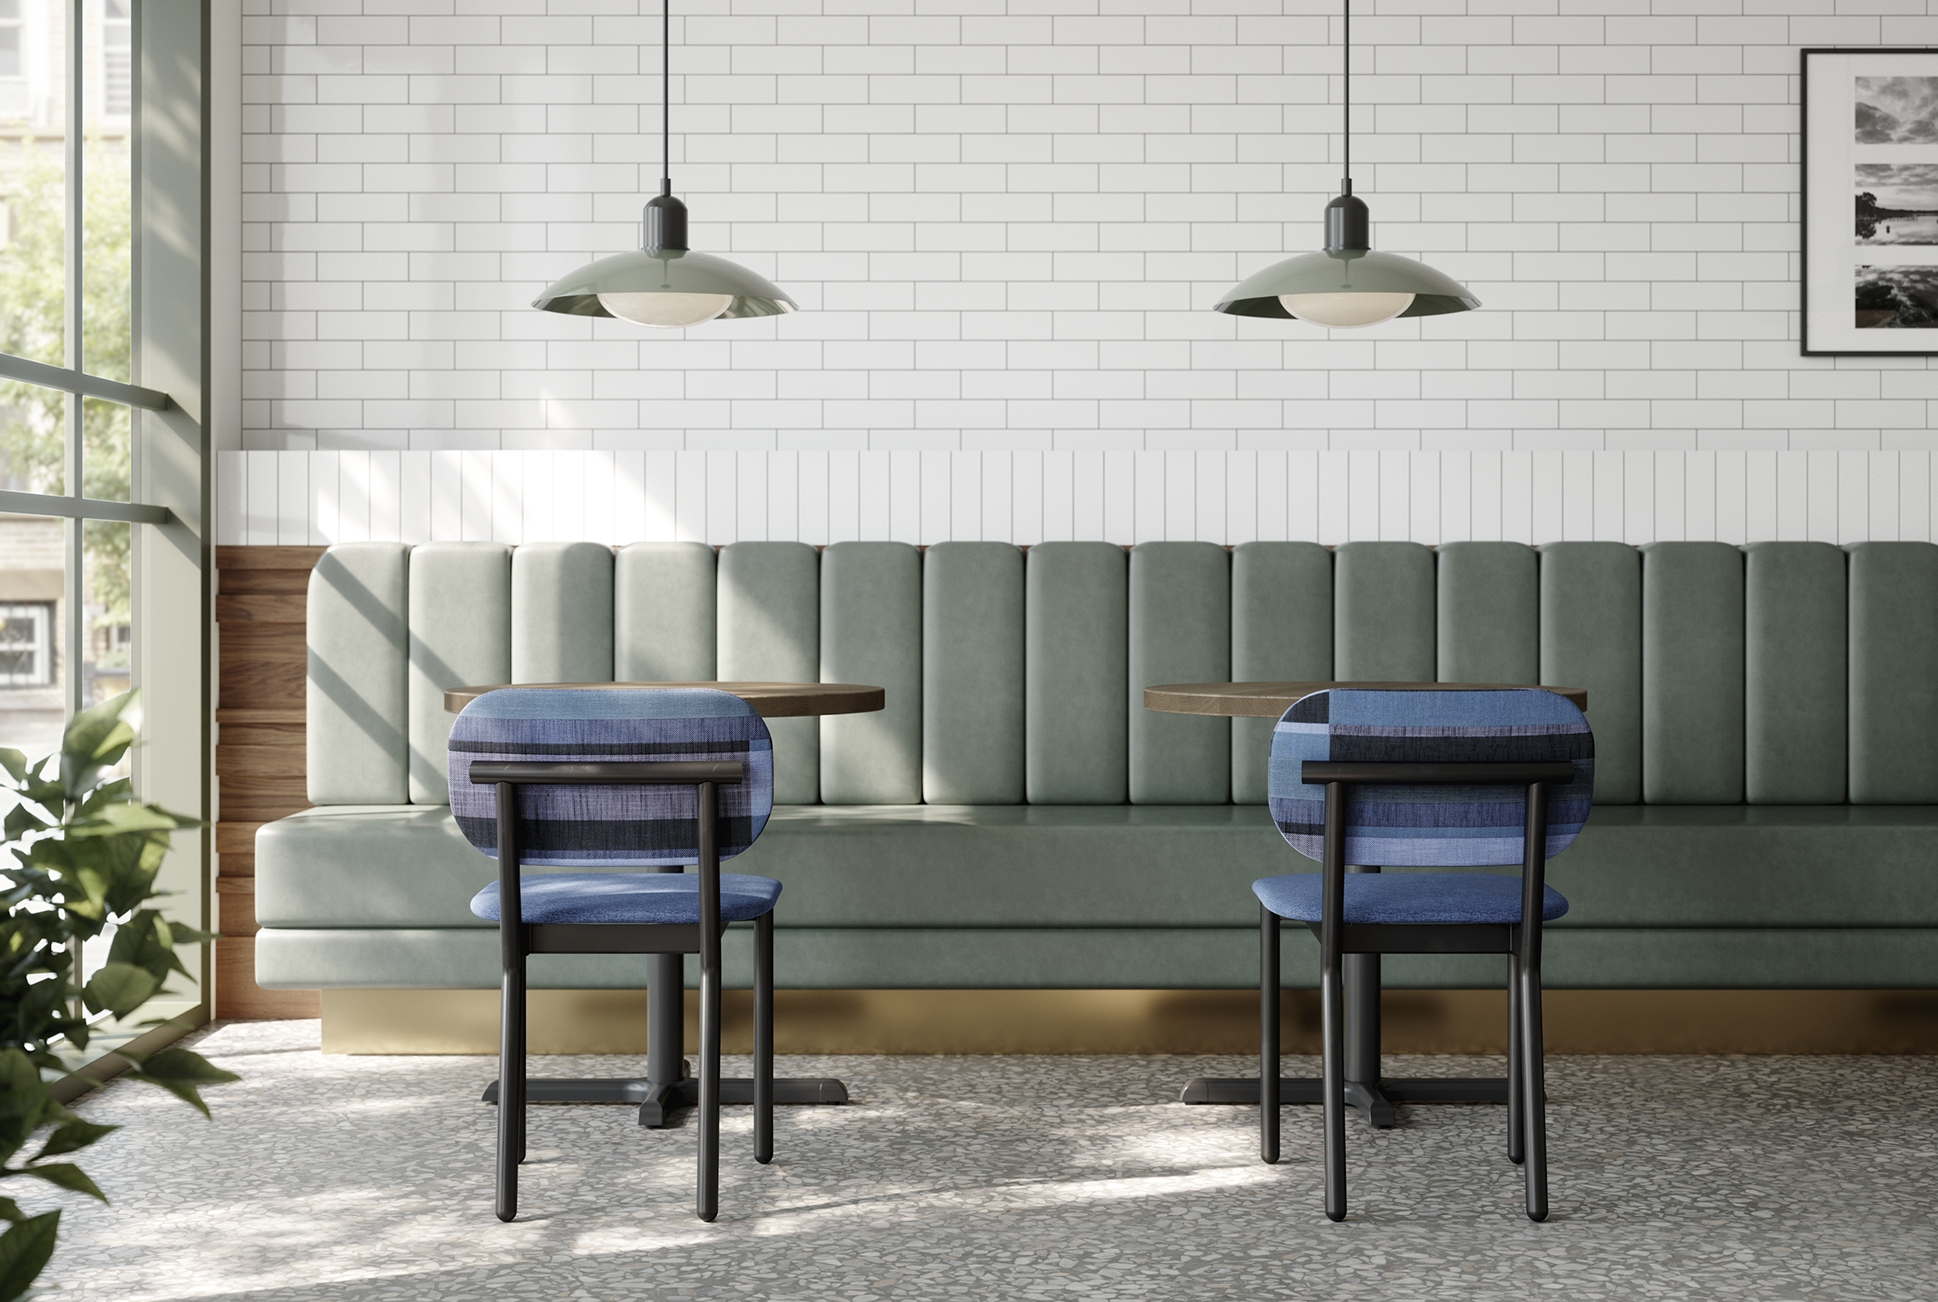 Ferdinand Upholstered chairs in Luum Structured Stripe fabric and black frame.